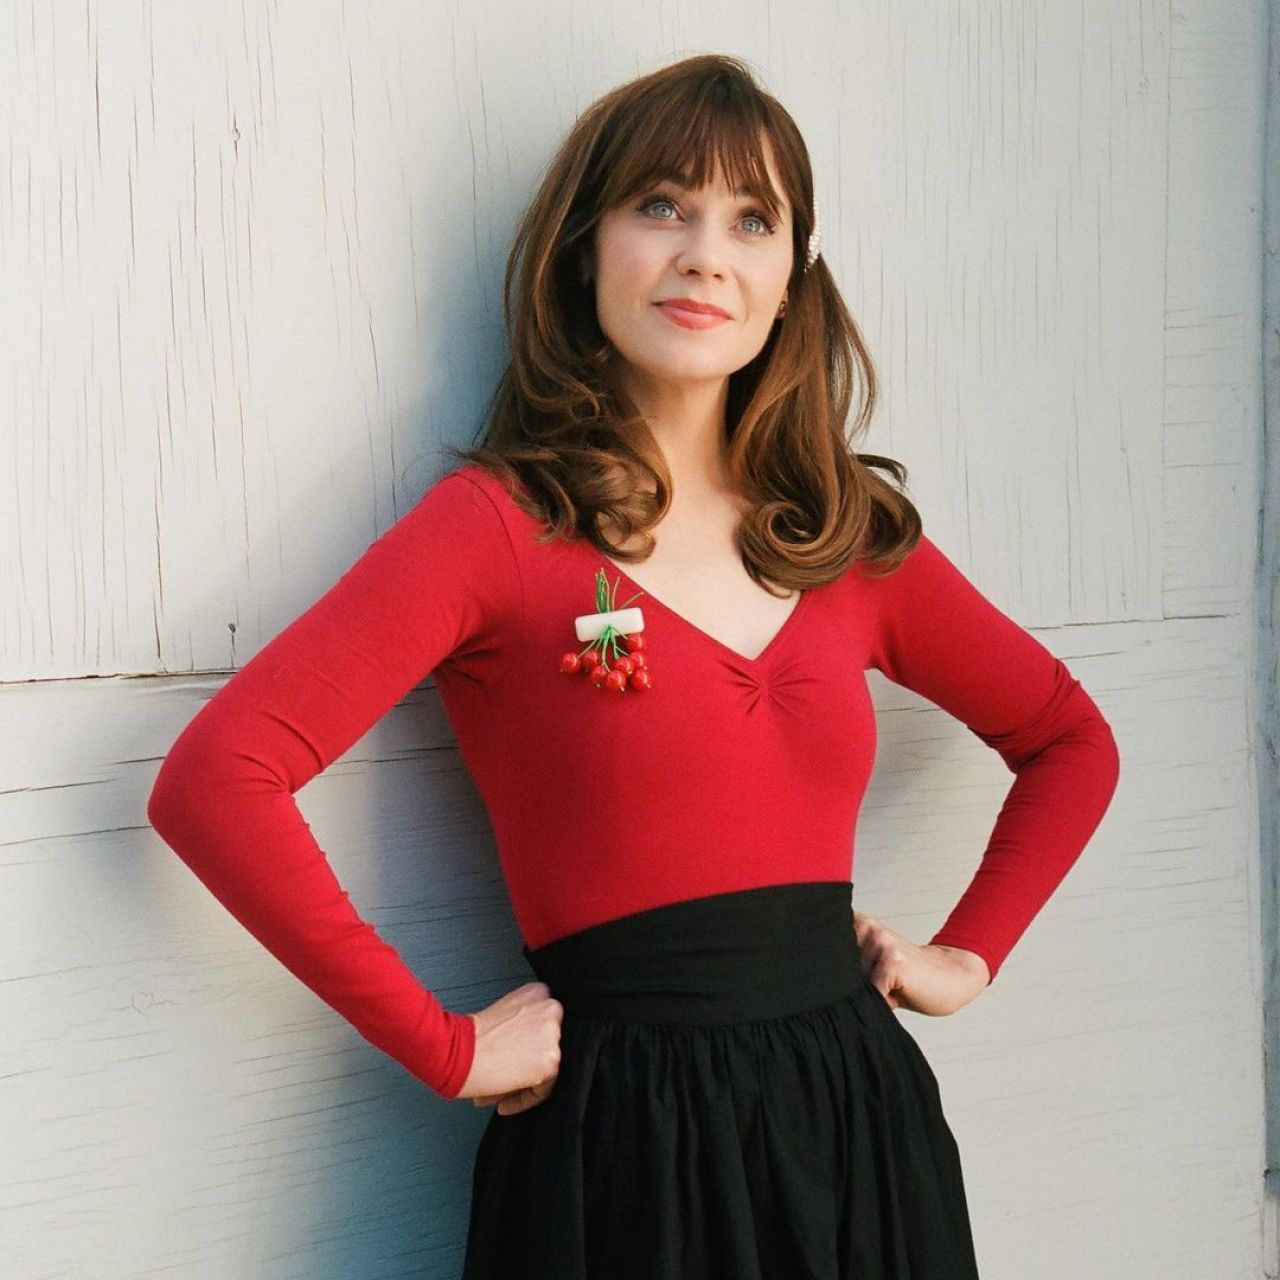 Zooey Deschanel shows off her post-pregnancy physique on